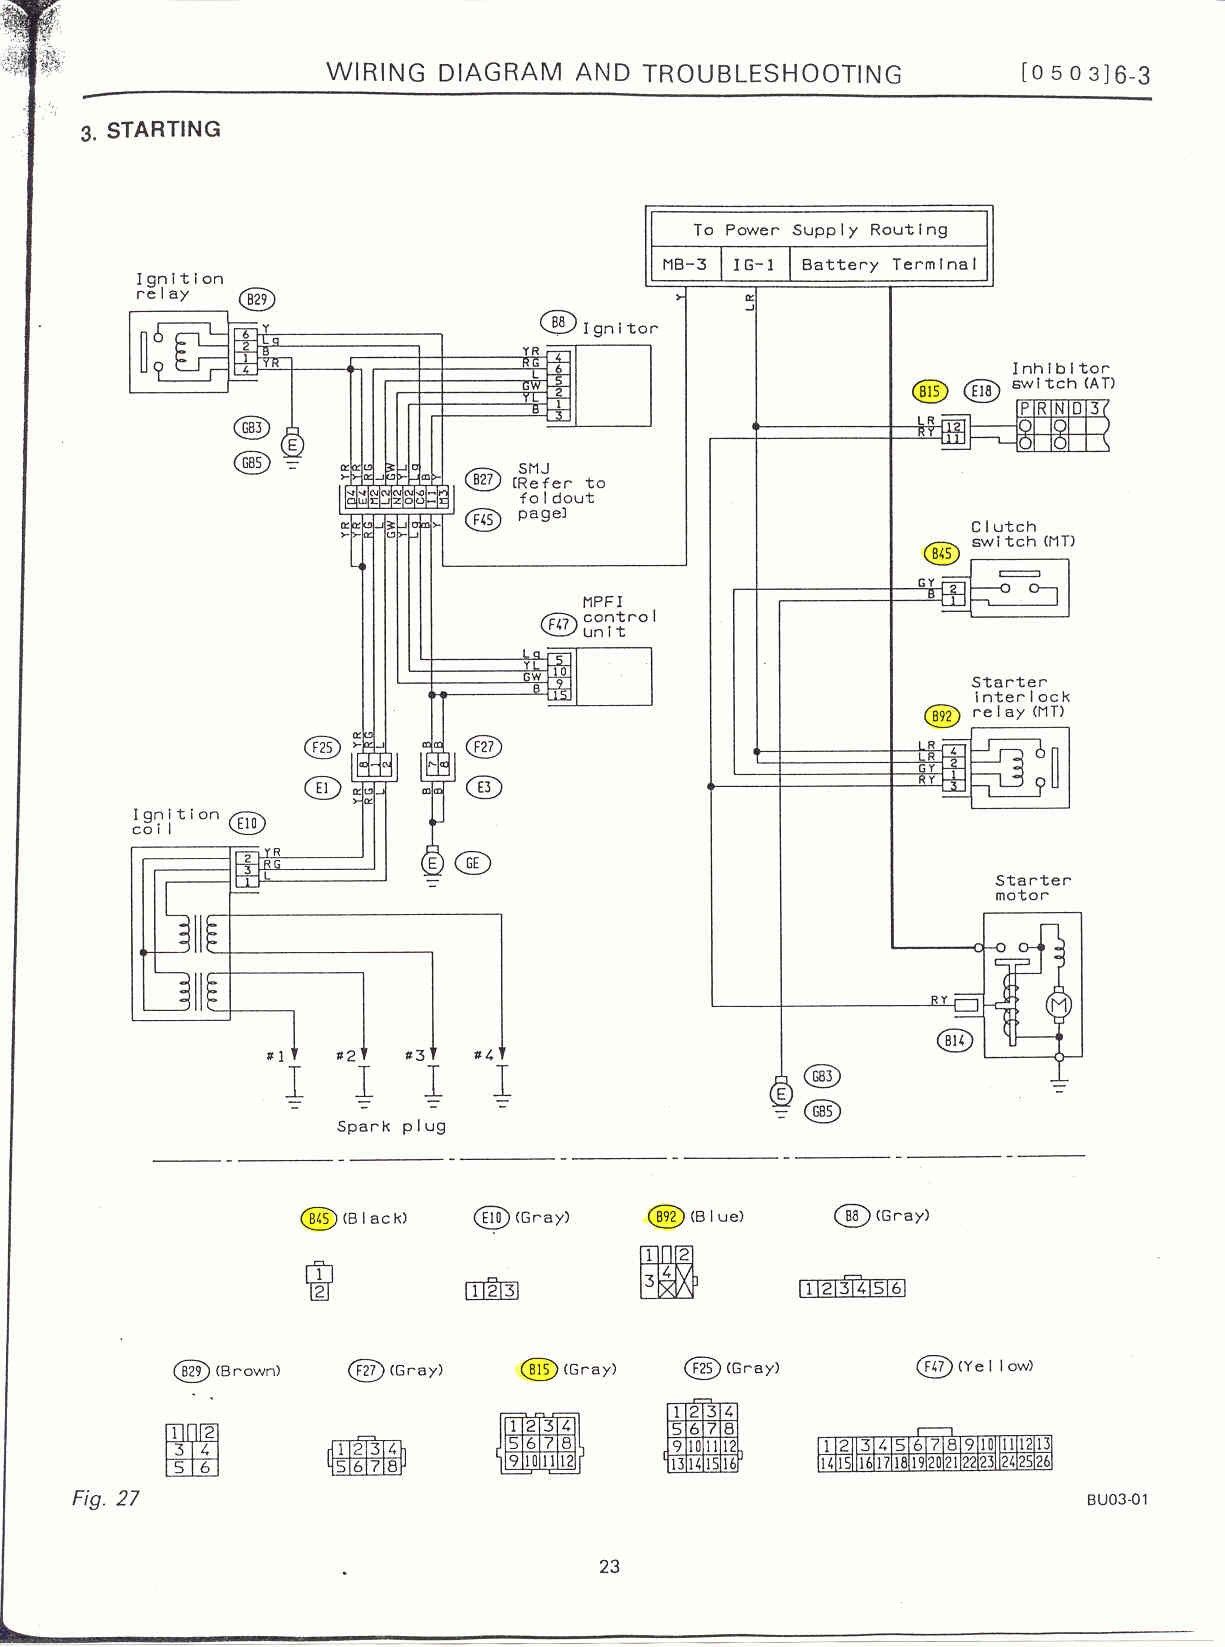 wiring diagram for tail lights on 1970 chevelle wiring diagram for reverse lights surrealmirage subaru legacy swap electrical info amp notes